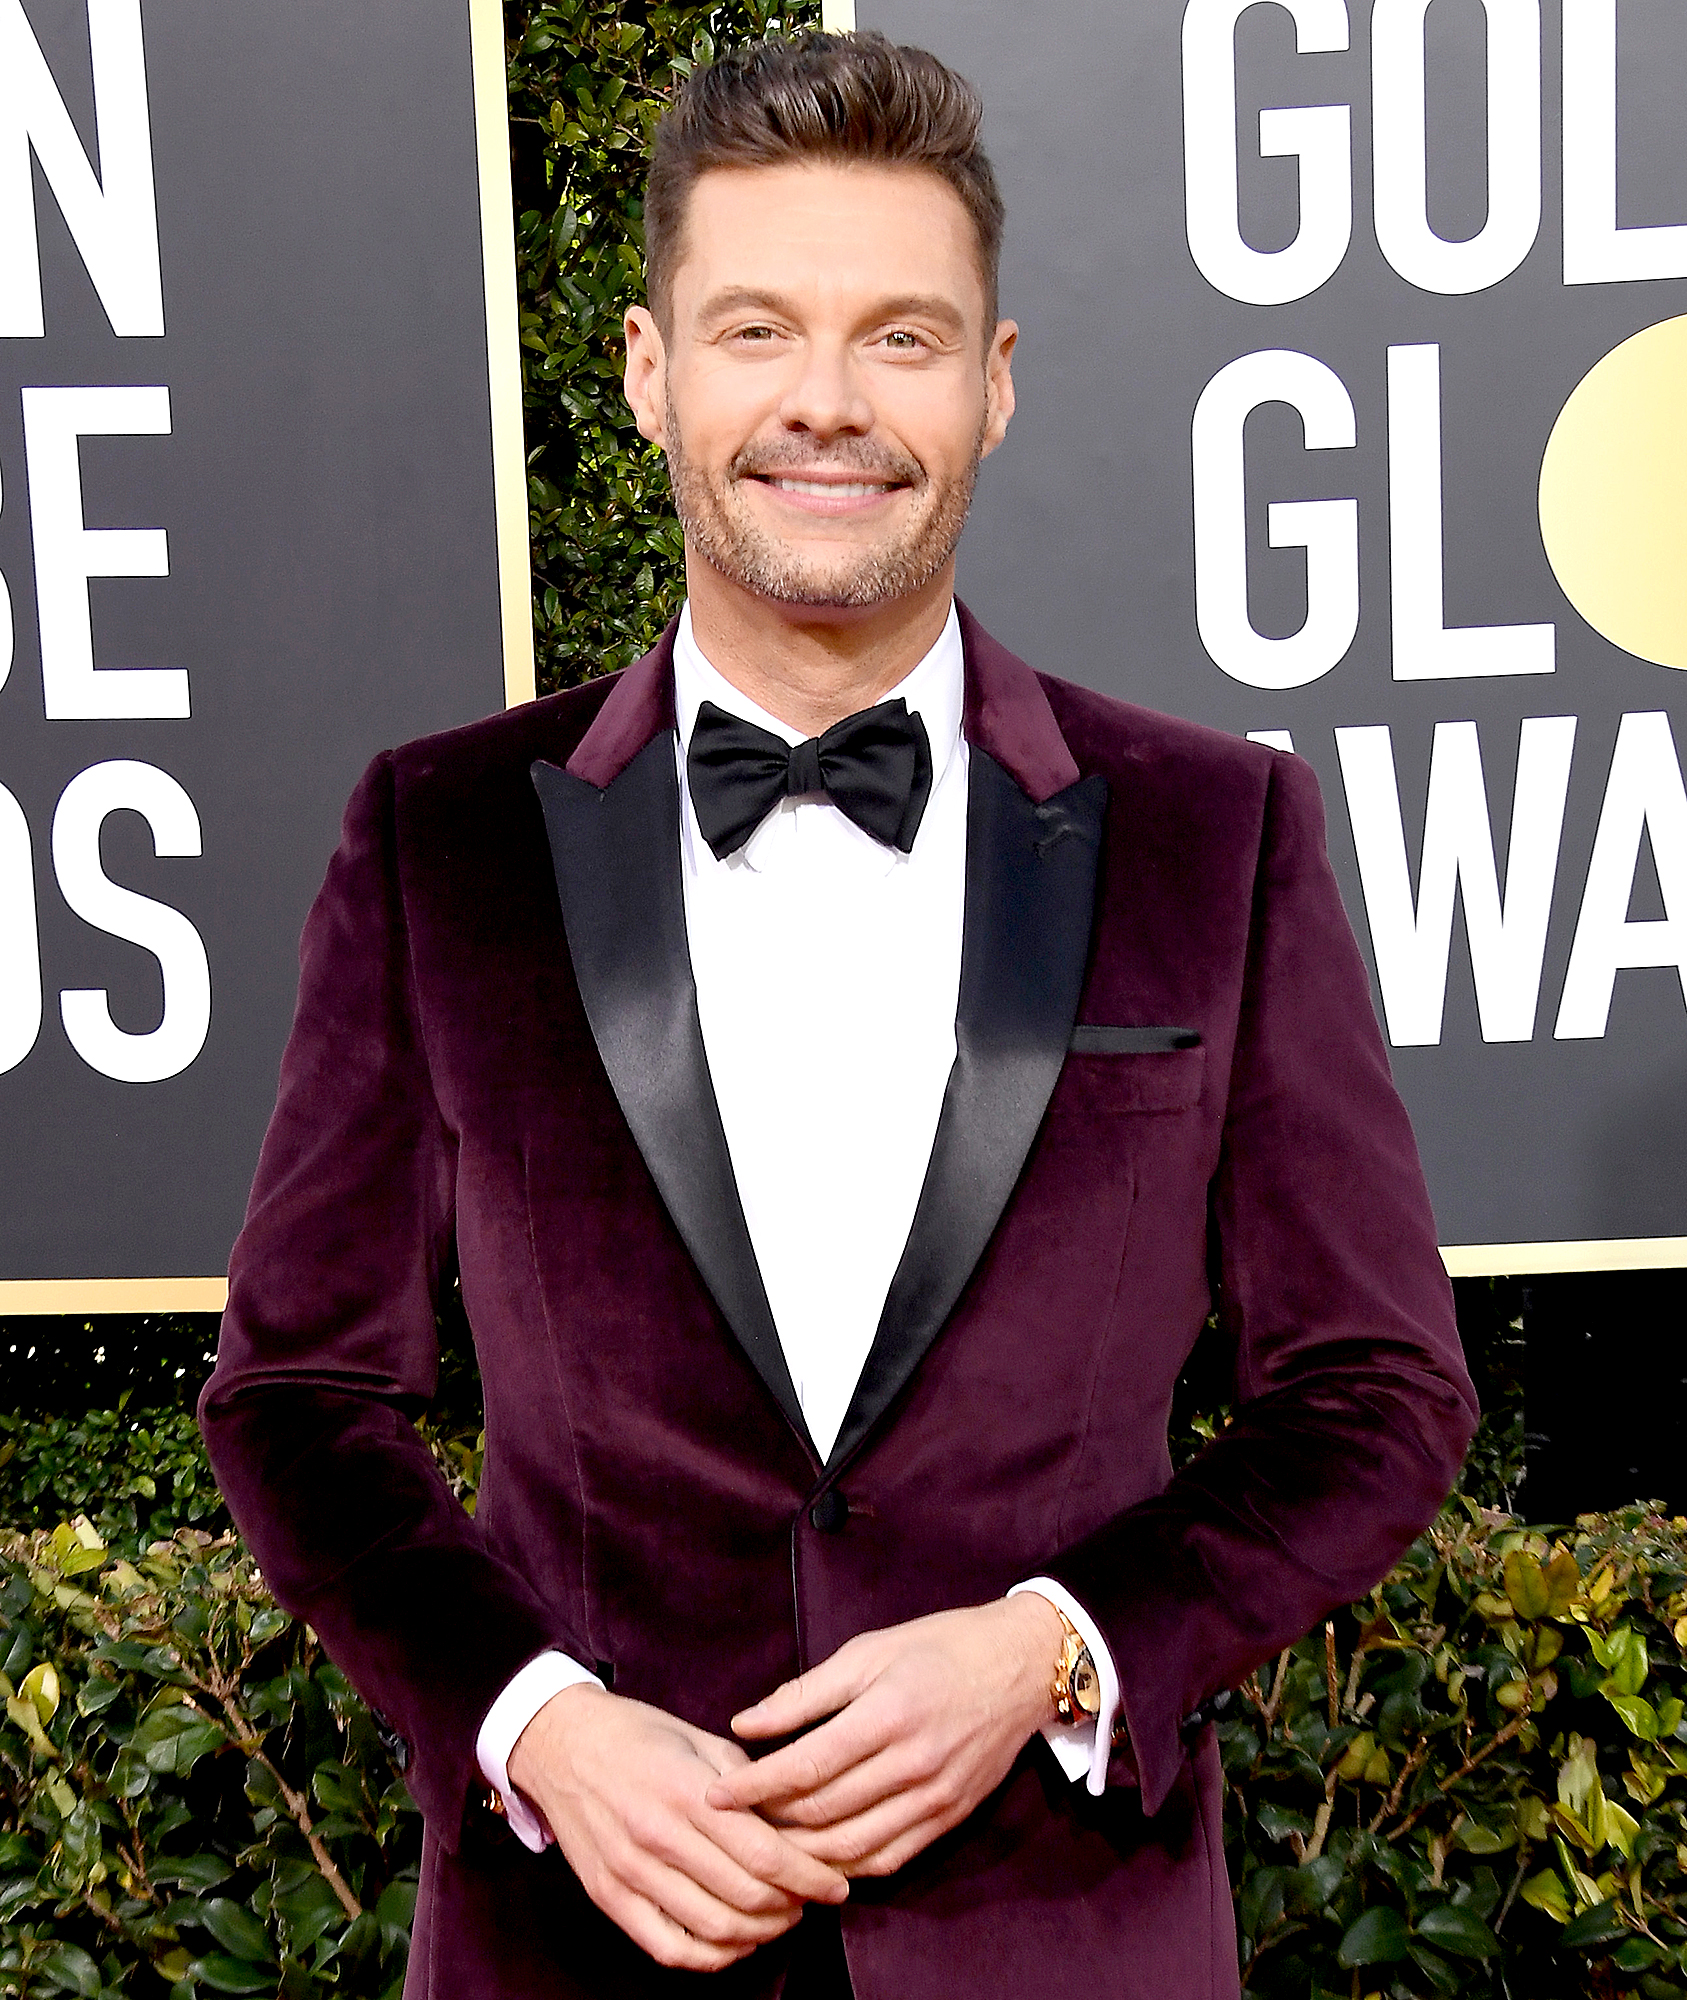 ryan-seacrest-talks-katy-perry-orlando-bloom-engagement - Ryan Seacrest attends the 76th Annual Golden Globe Awards at The Beverly Hilton Hotel on January 6, 2019 in Beverly Hills, California.